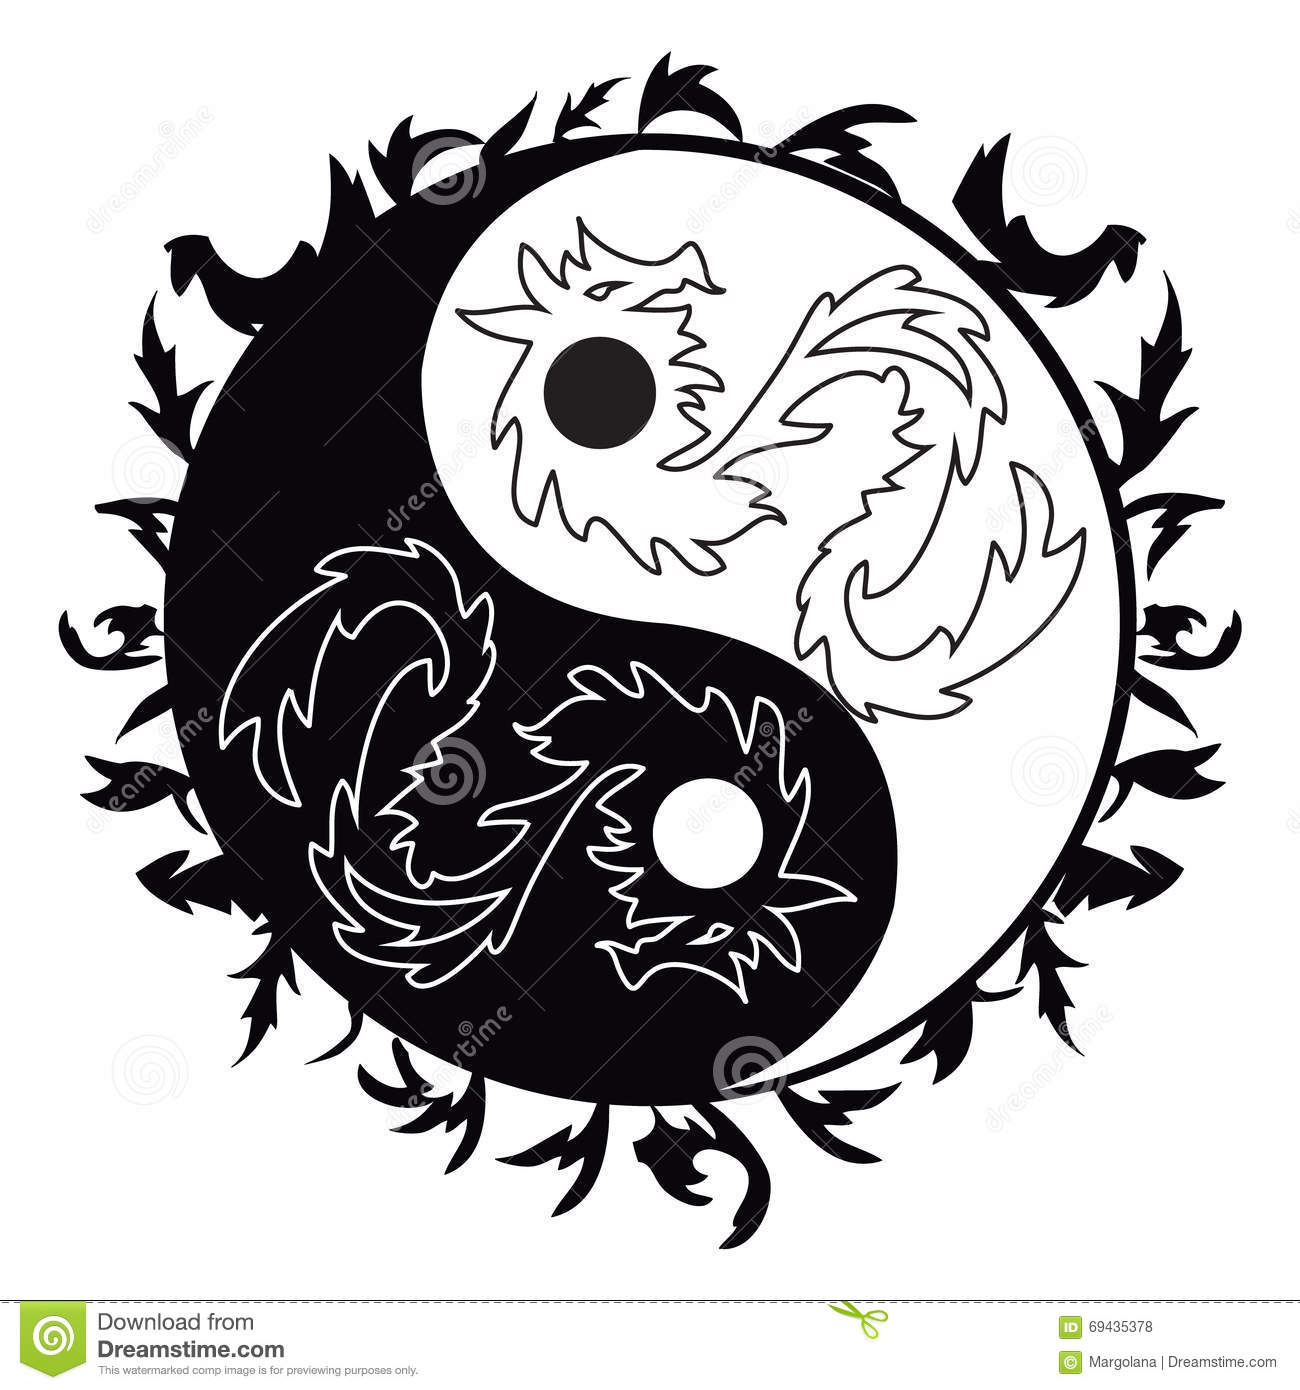 Yin Yang Tattoo With Dragons Stock Vector Illustration Of Hand